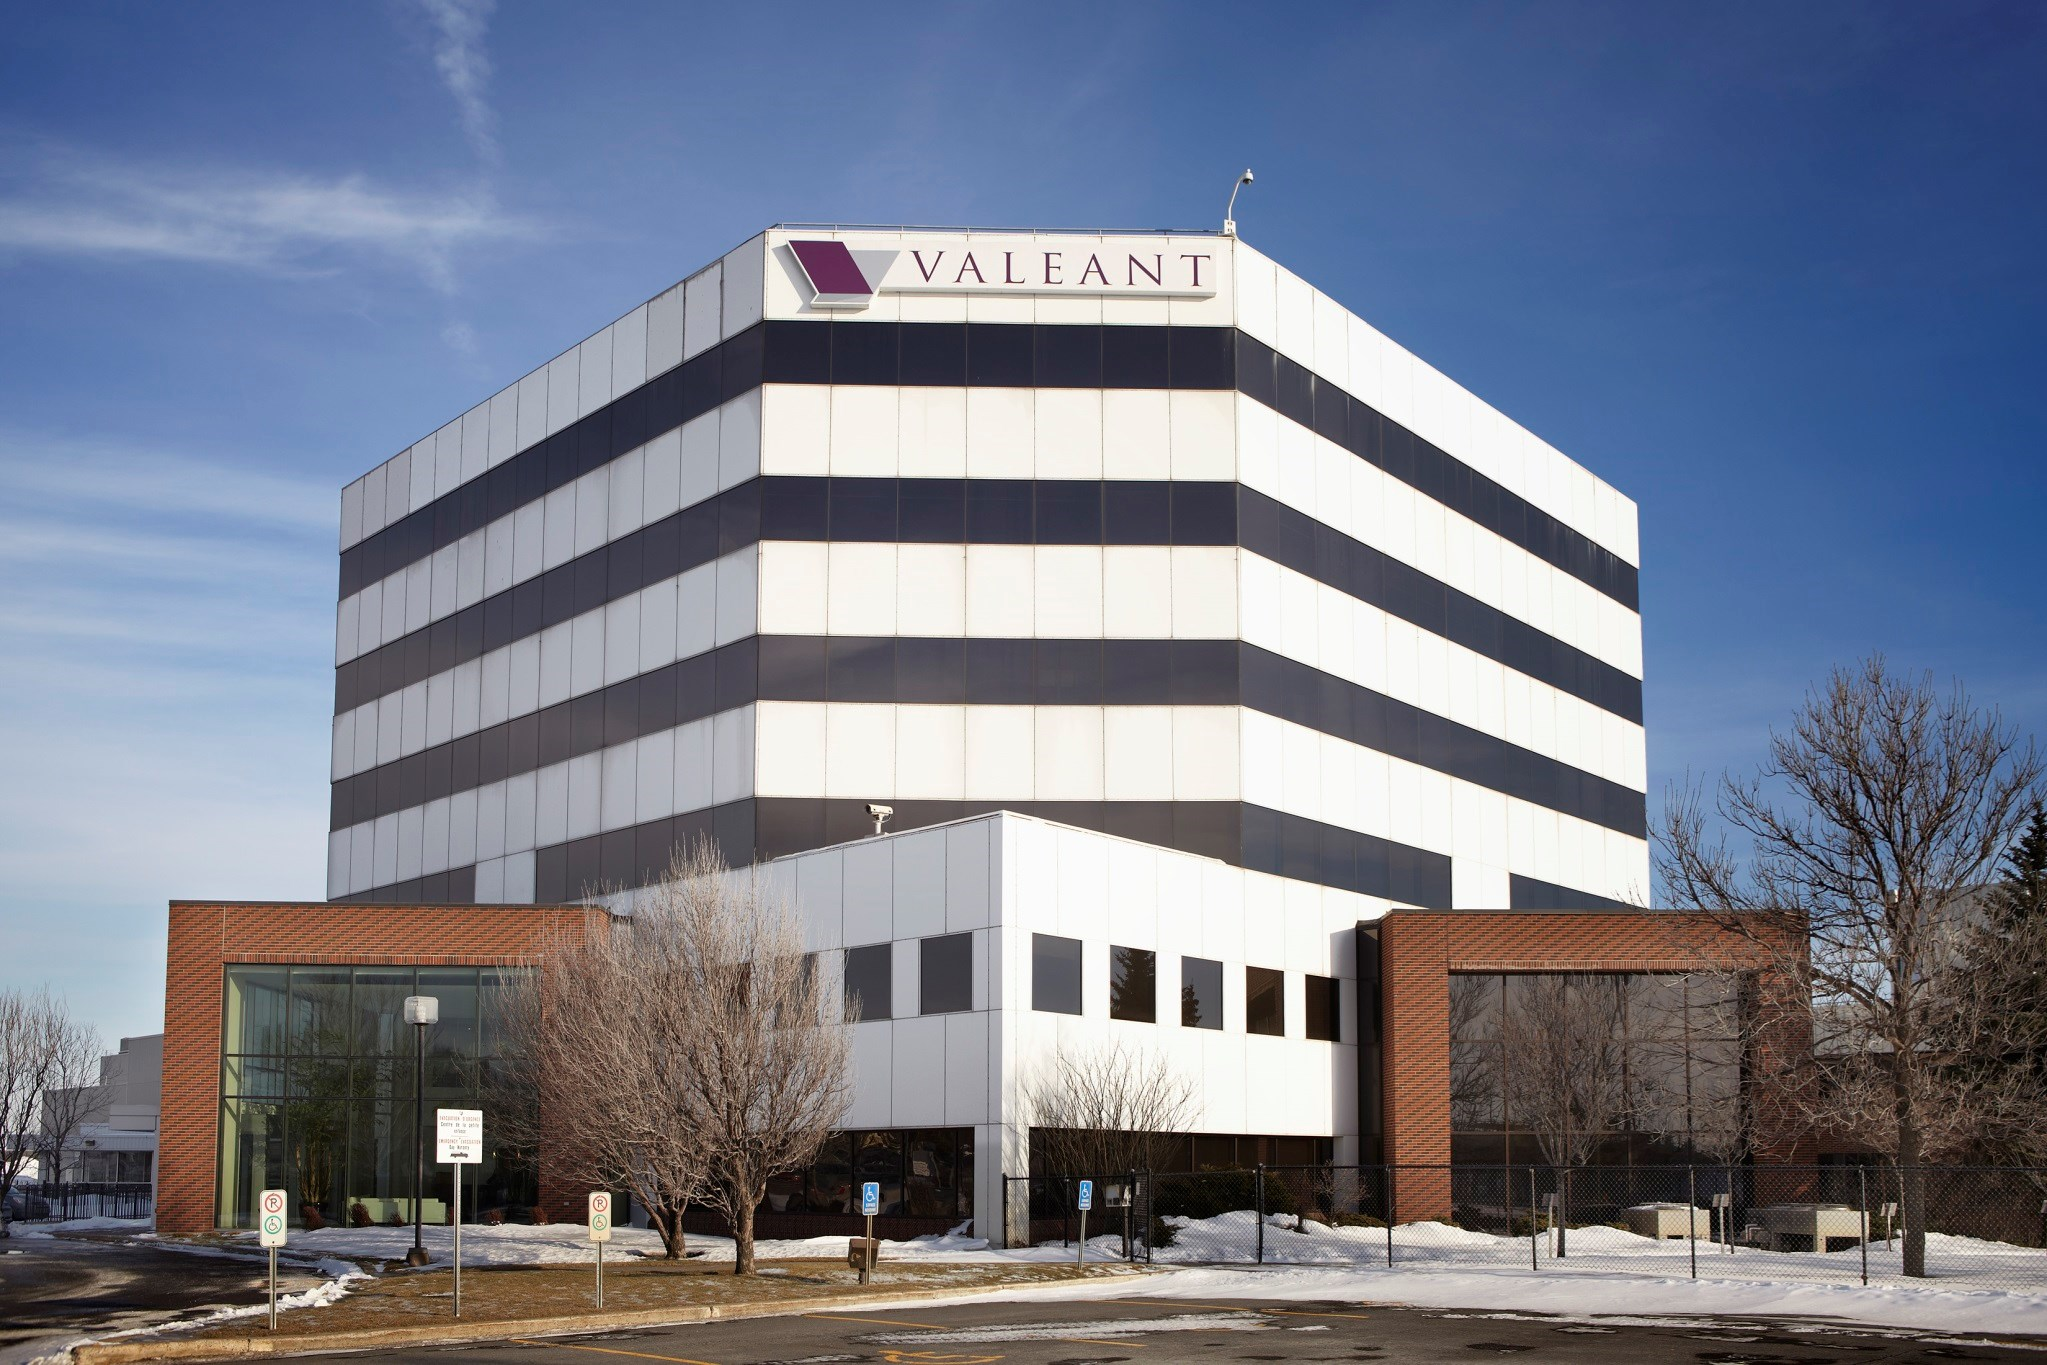 Valeant subsidiary discloses subpoena over doctor payments